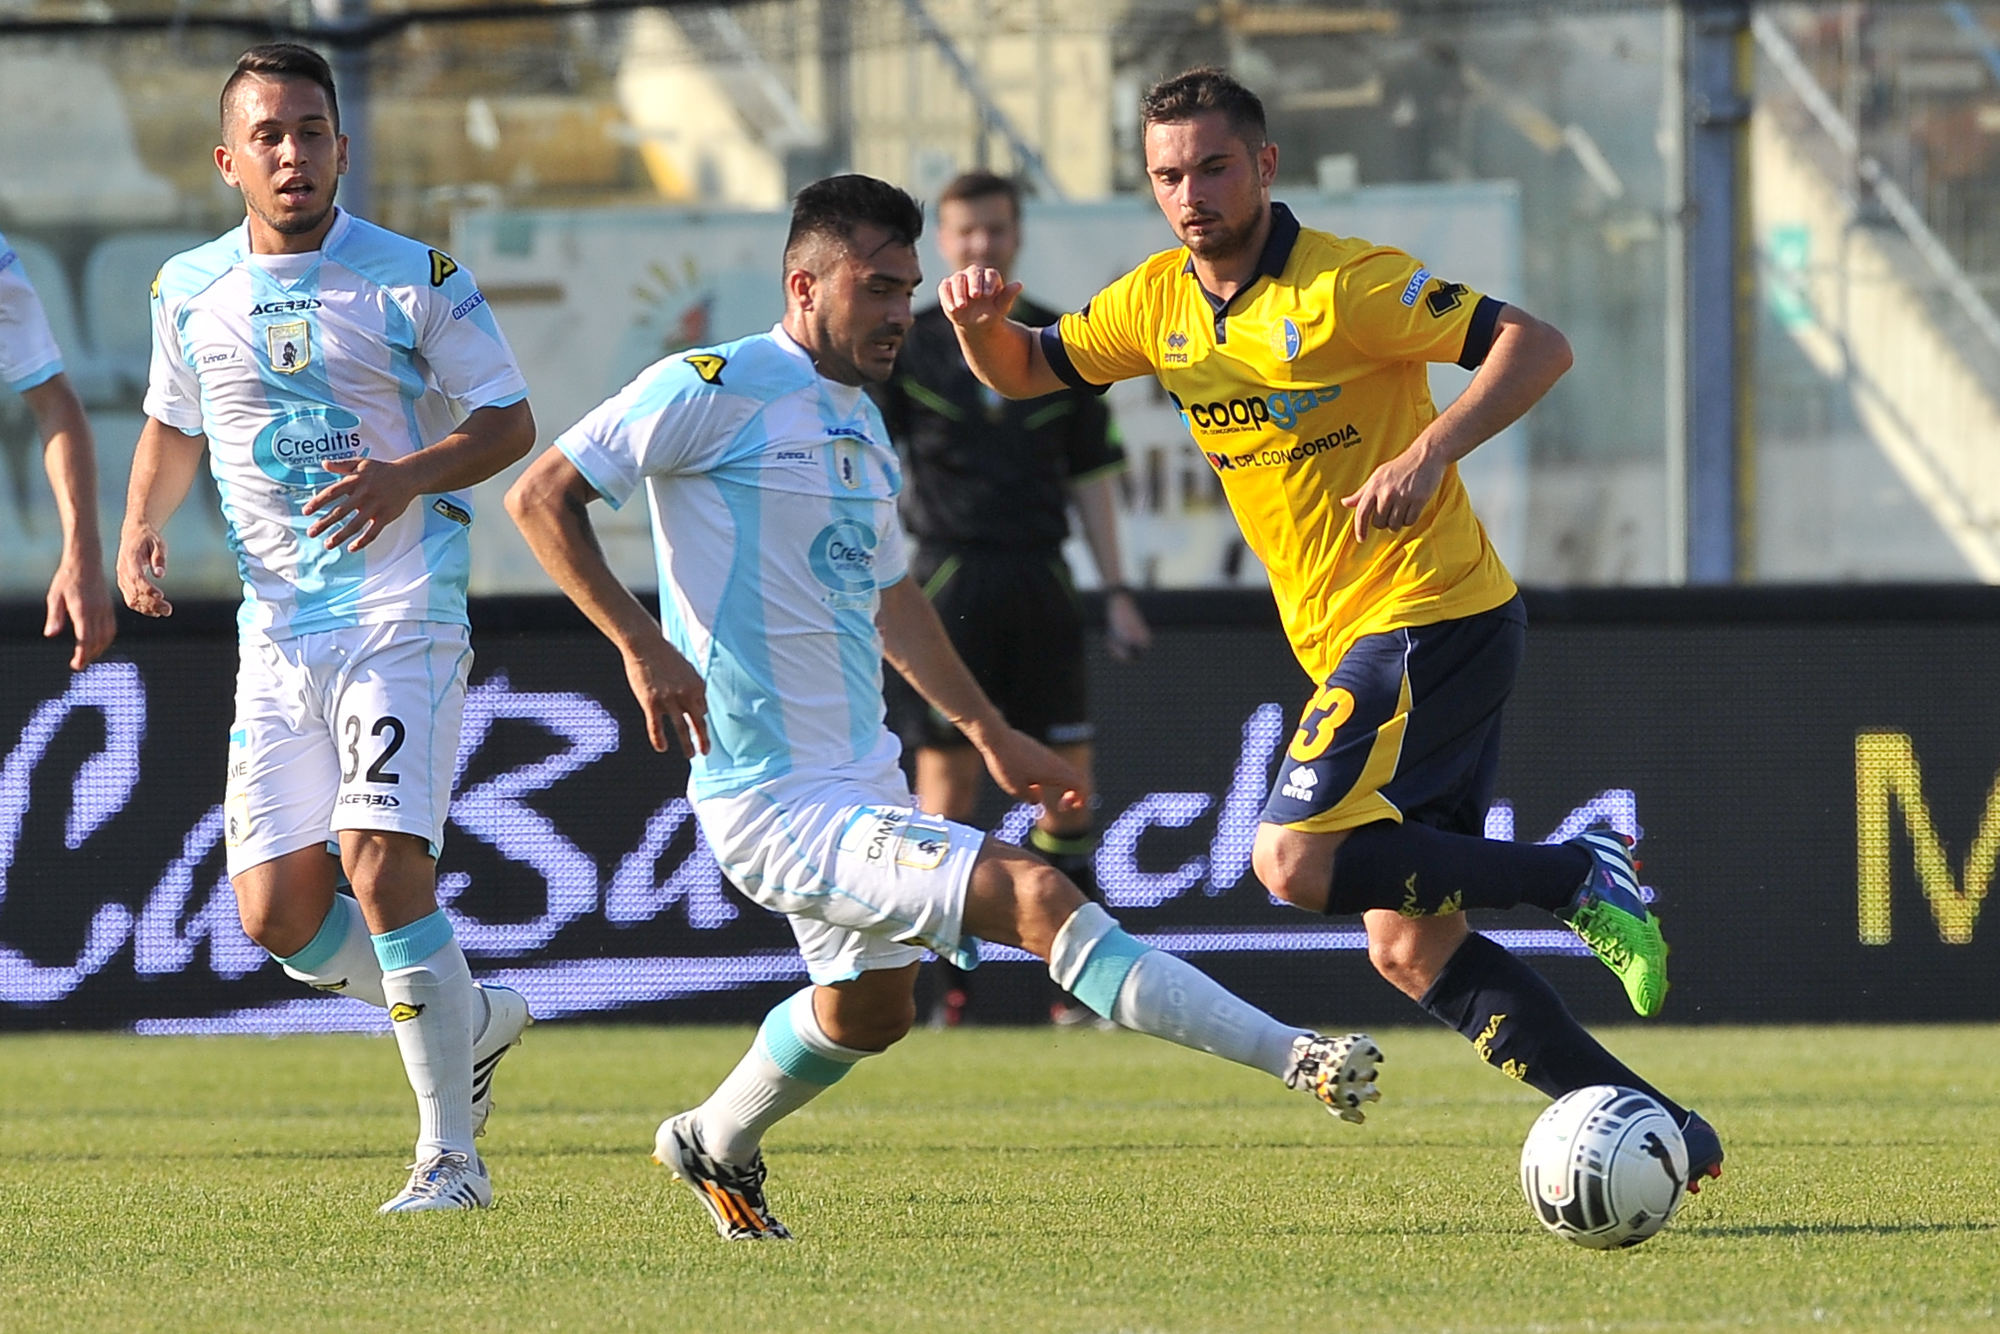 Modena - Virtus Entella